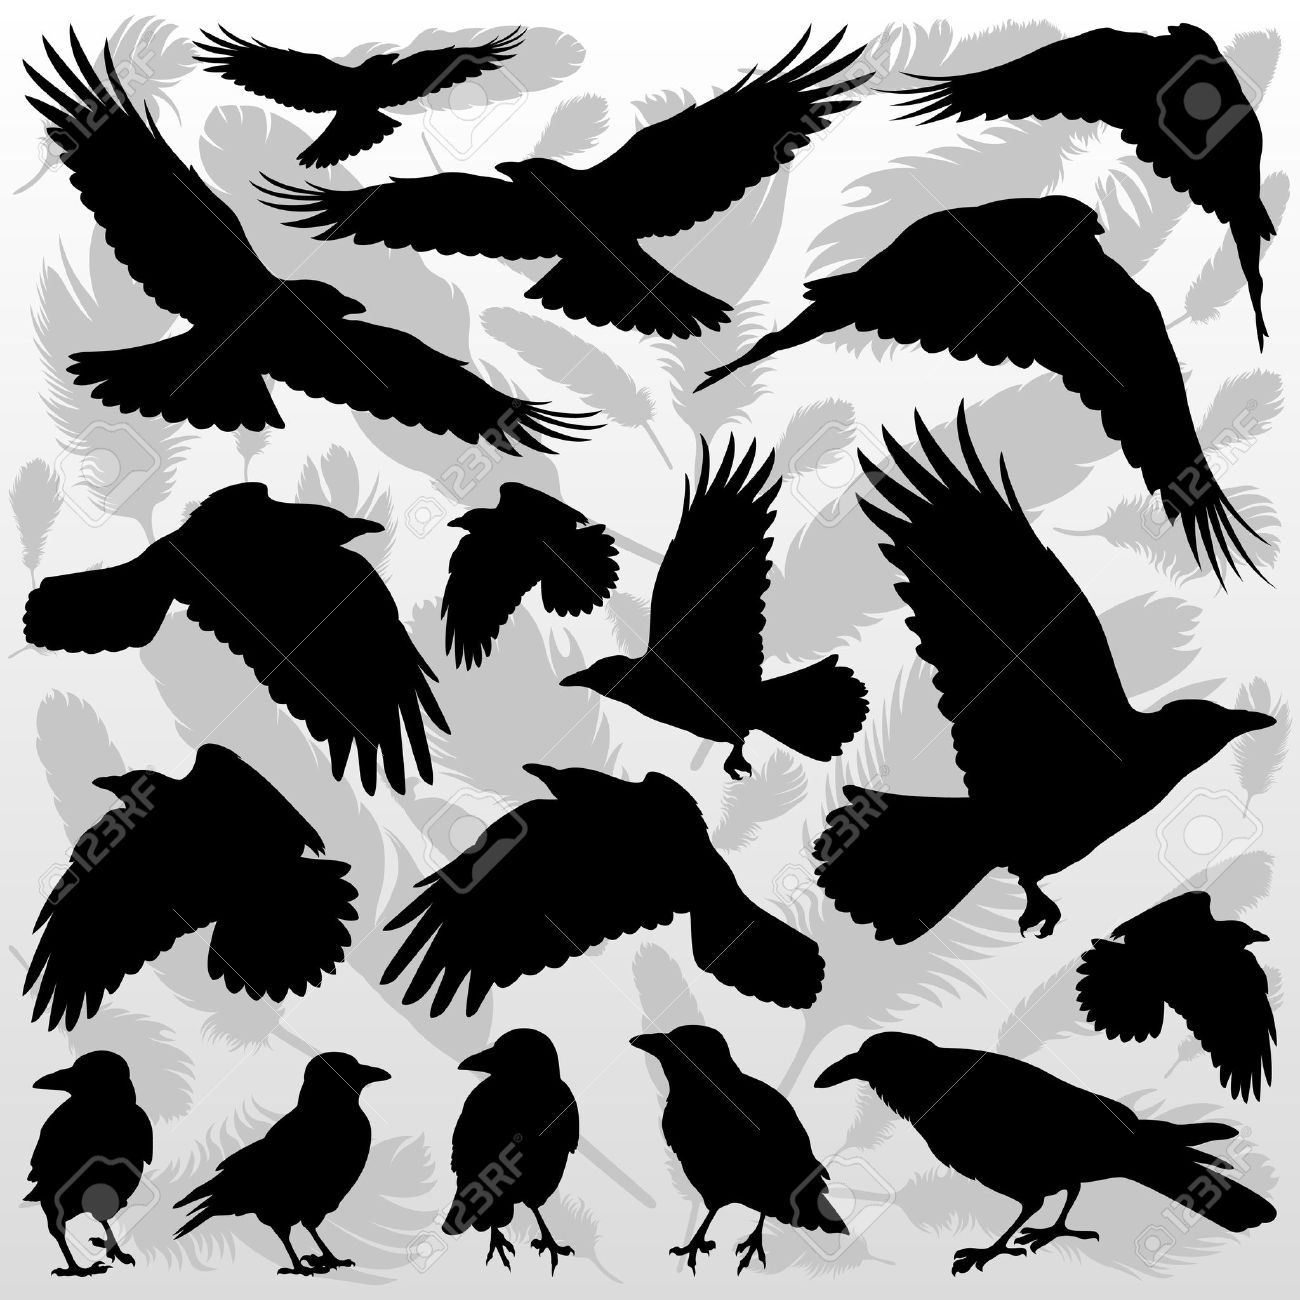 Crow and feathers silhouettes illustration collection background vector Stock Vector - 12484775